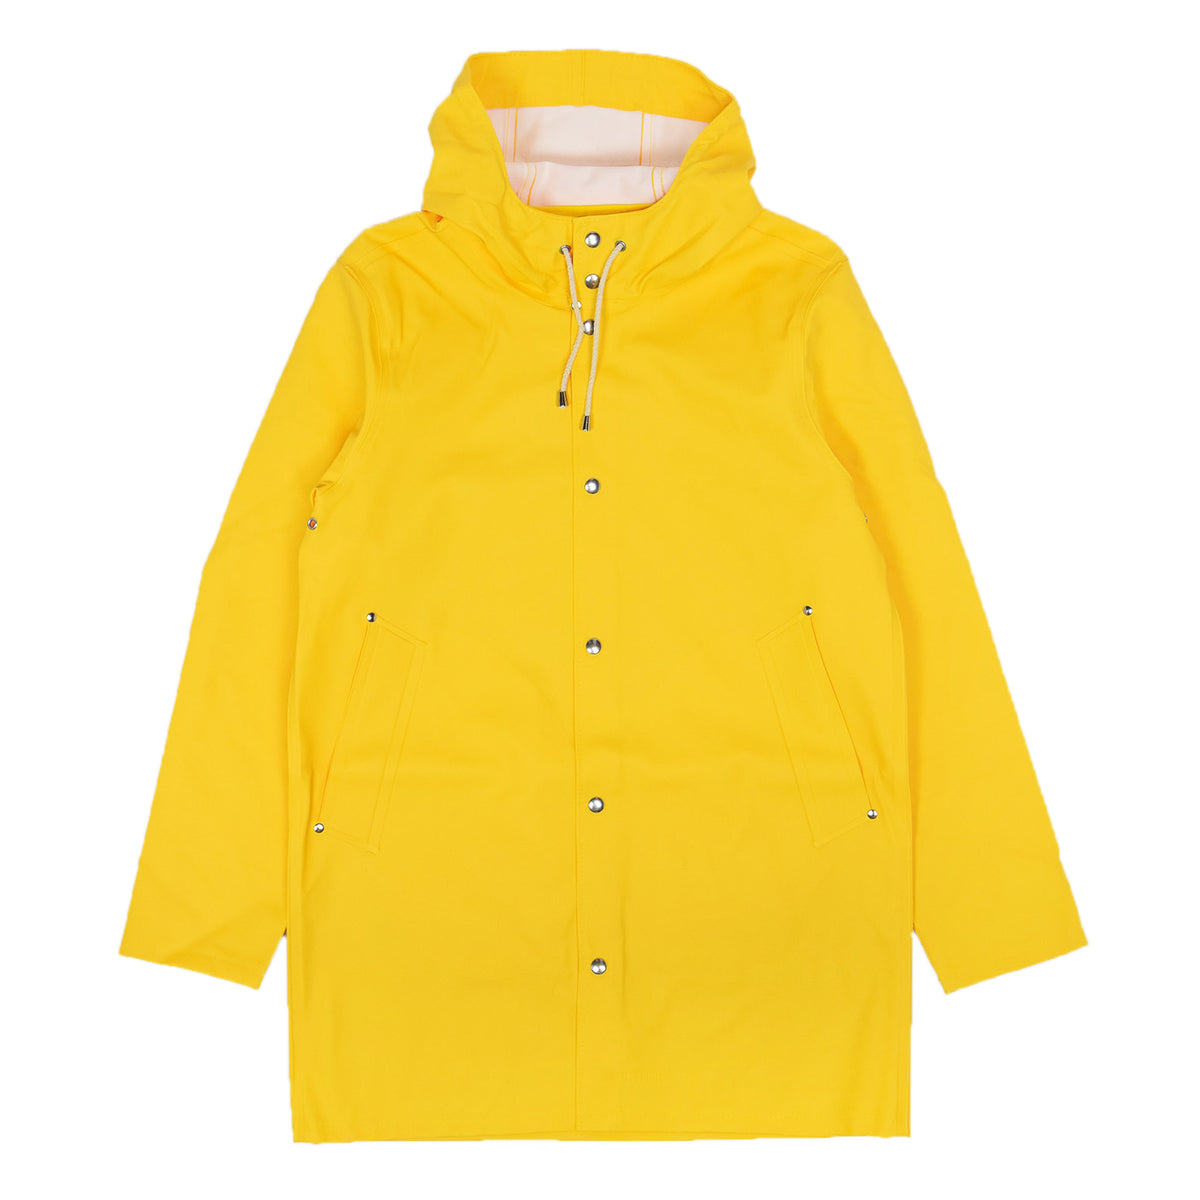 Stutterheim Stockholm Rubberised Raincoat Jacket Yellow Front